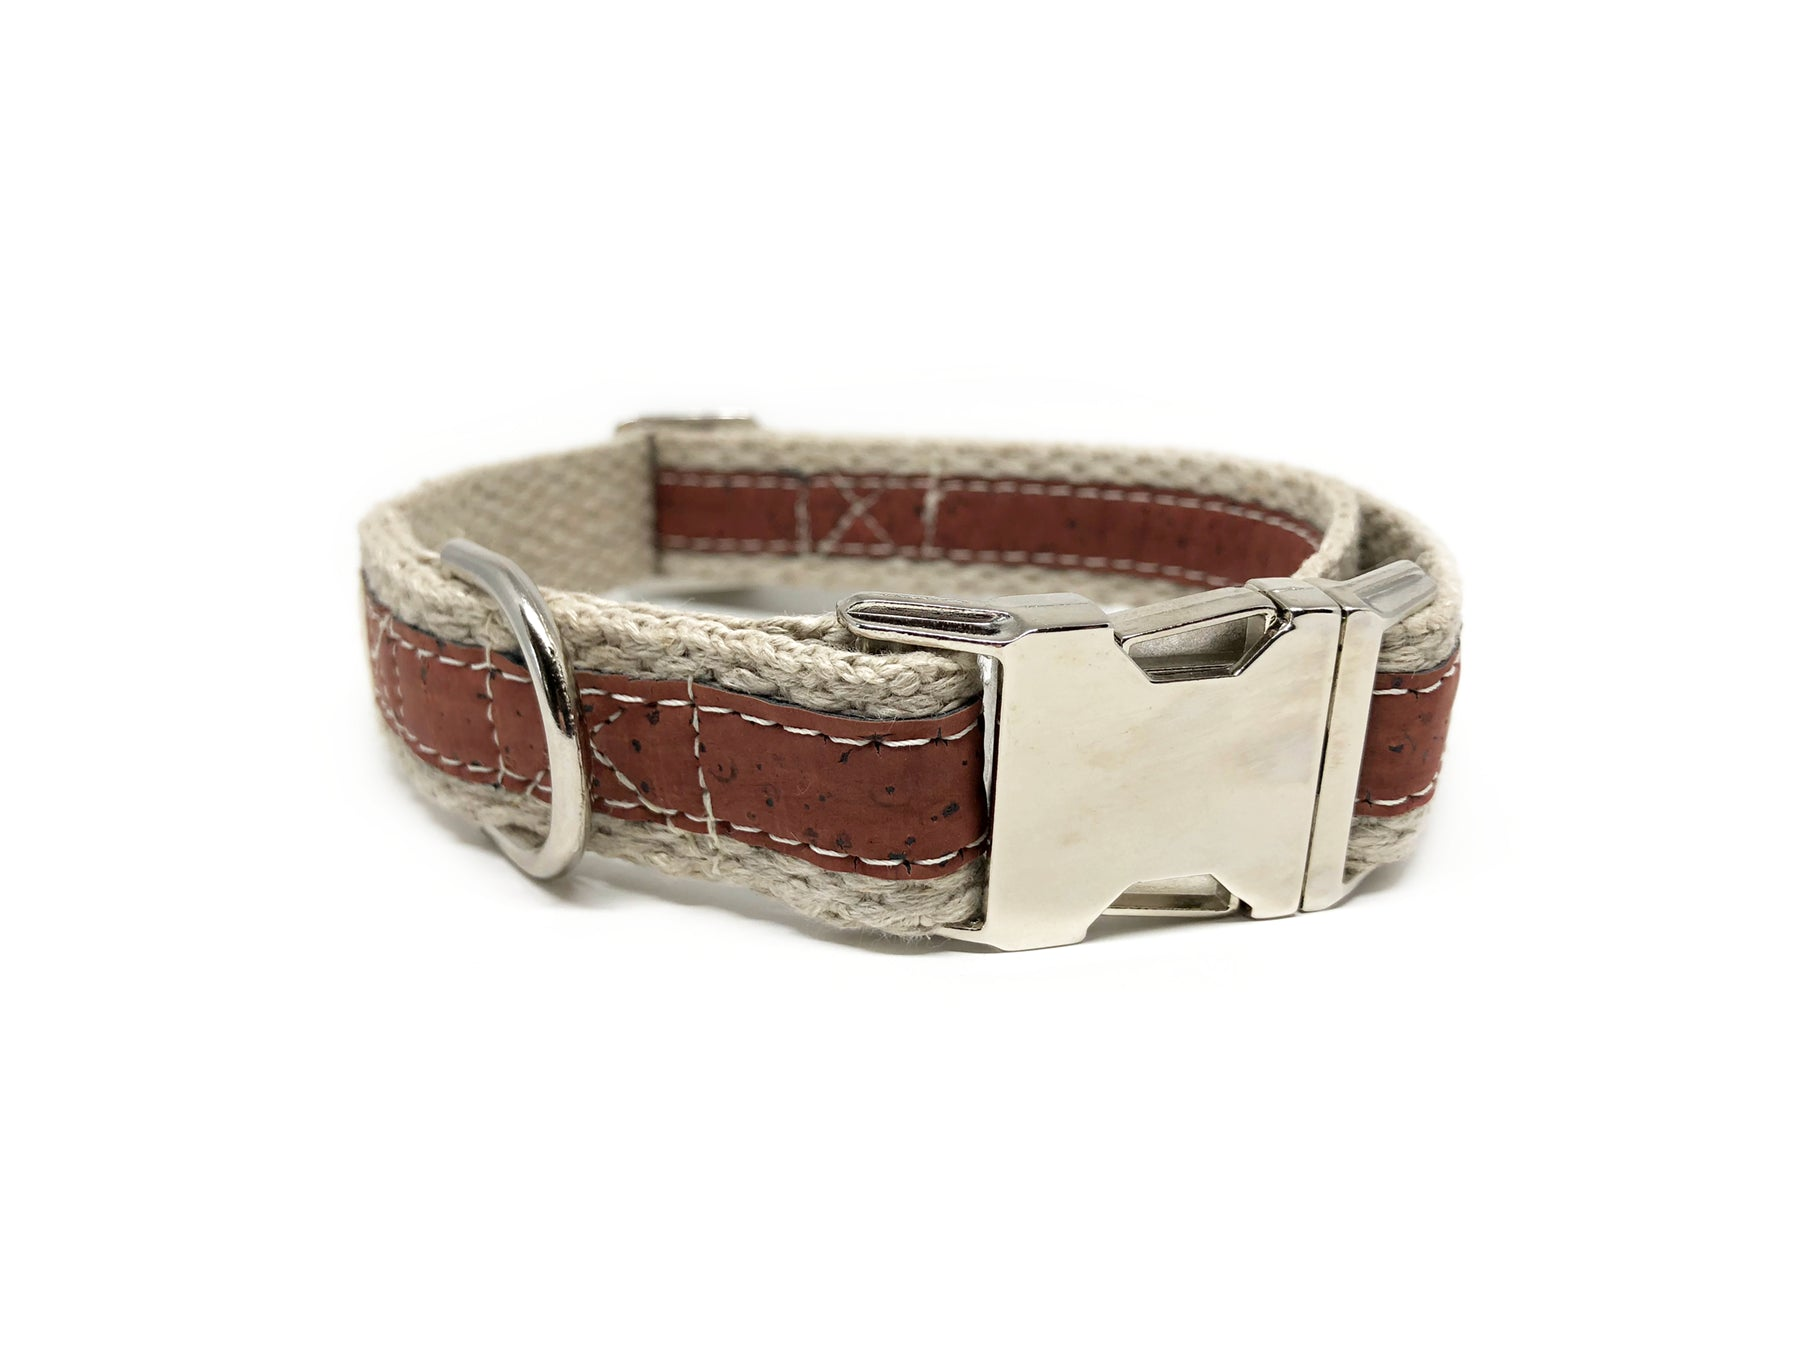 Adventurer Red Cork Leather Large Dog Collar, Hemp Webbing